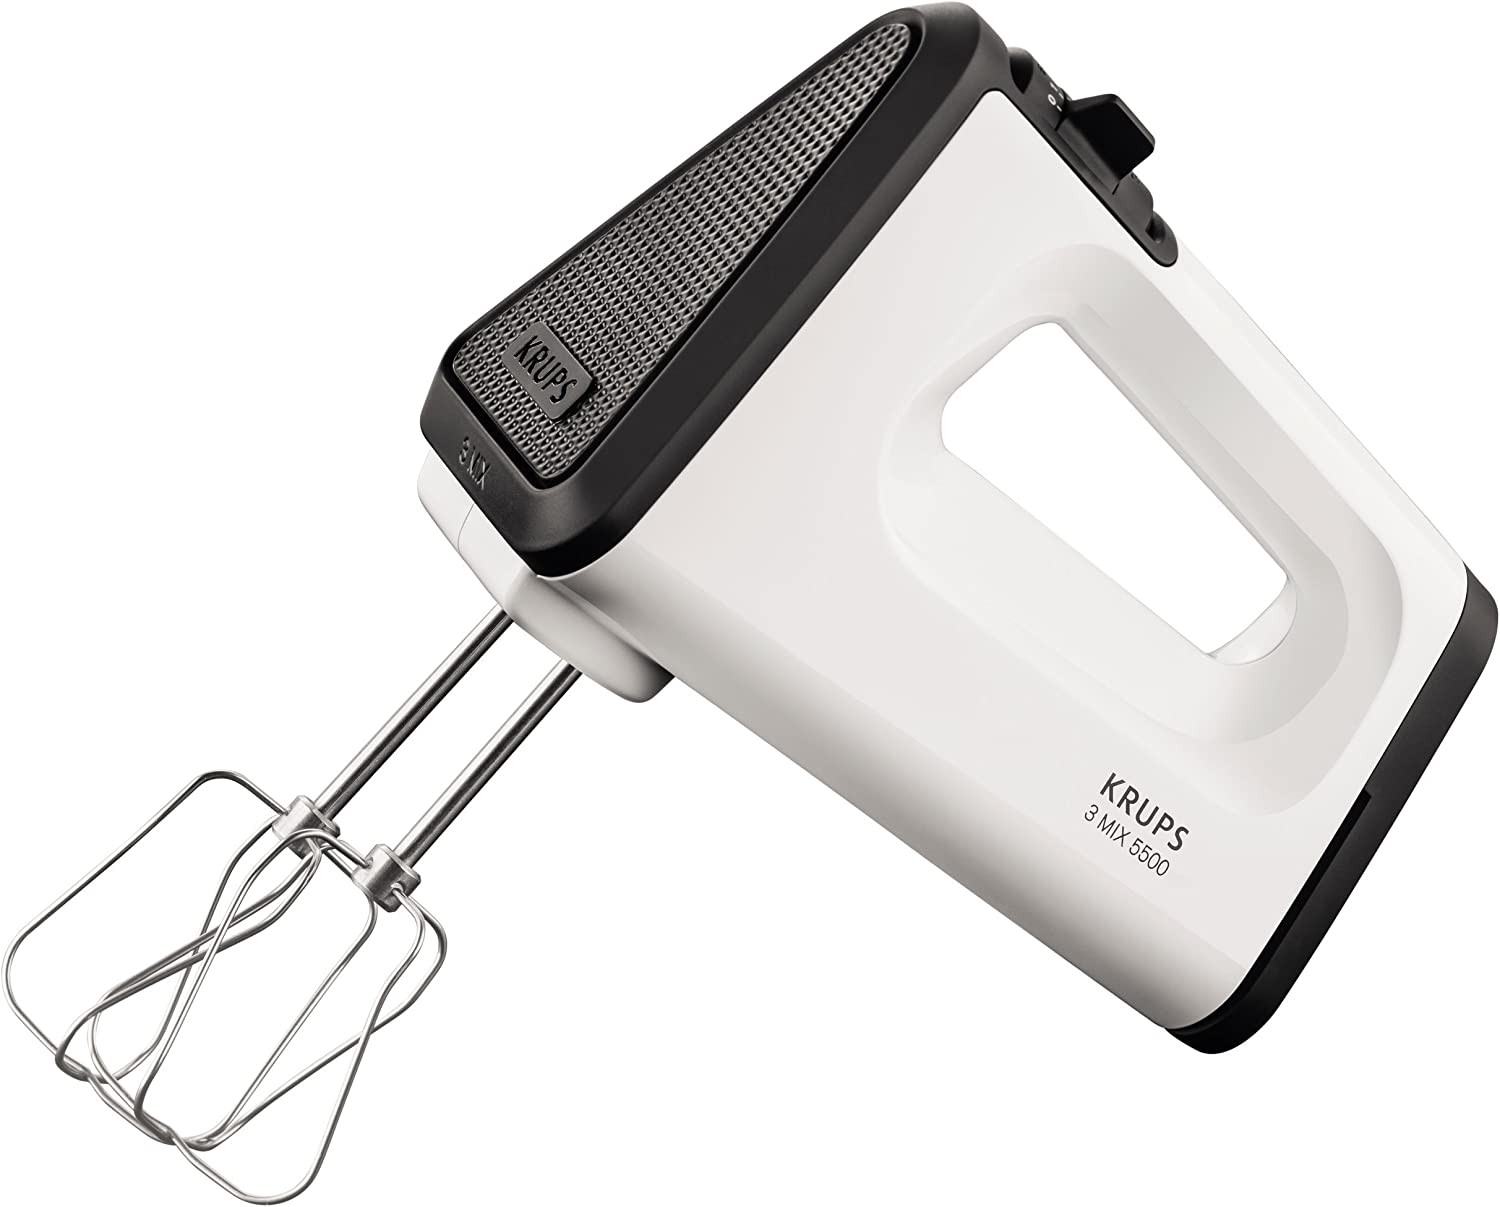 Krups 3 Mix 5500 Plus Hand mixer 500W Negro, Acero inoxidable, Color blanco - Batidora (Hand mixer, Negro, Acero inoxidable, Color blanco, Acero inoxidable, 500 W, 185 mm, 275 mm)